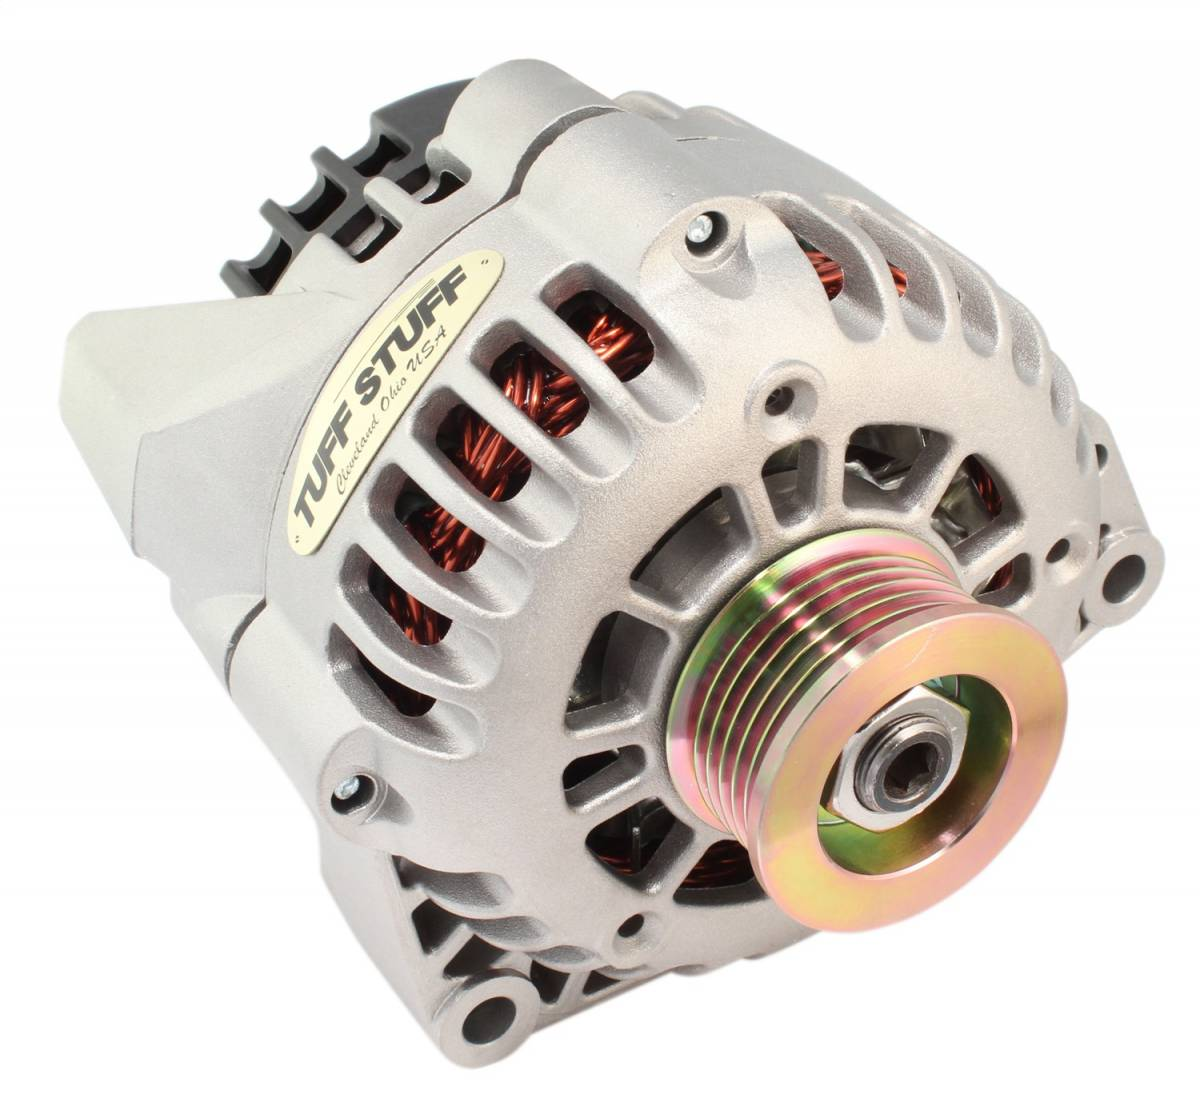 Tuff Stuff Performance - Alternator 175 AMP Upgrade 1-Wire Or OEM Wire Hookup Double Wide Heavy Duty Ball Bearings 6 Groove Pulley Factory Cast PLUS+ 8206ND